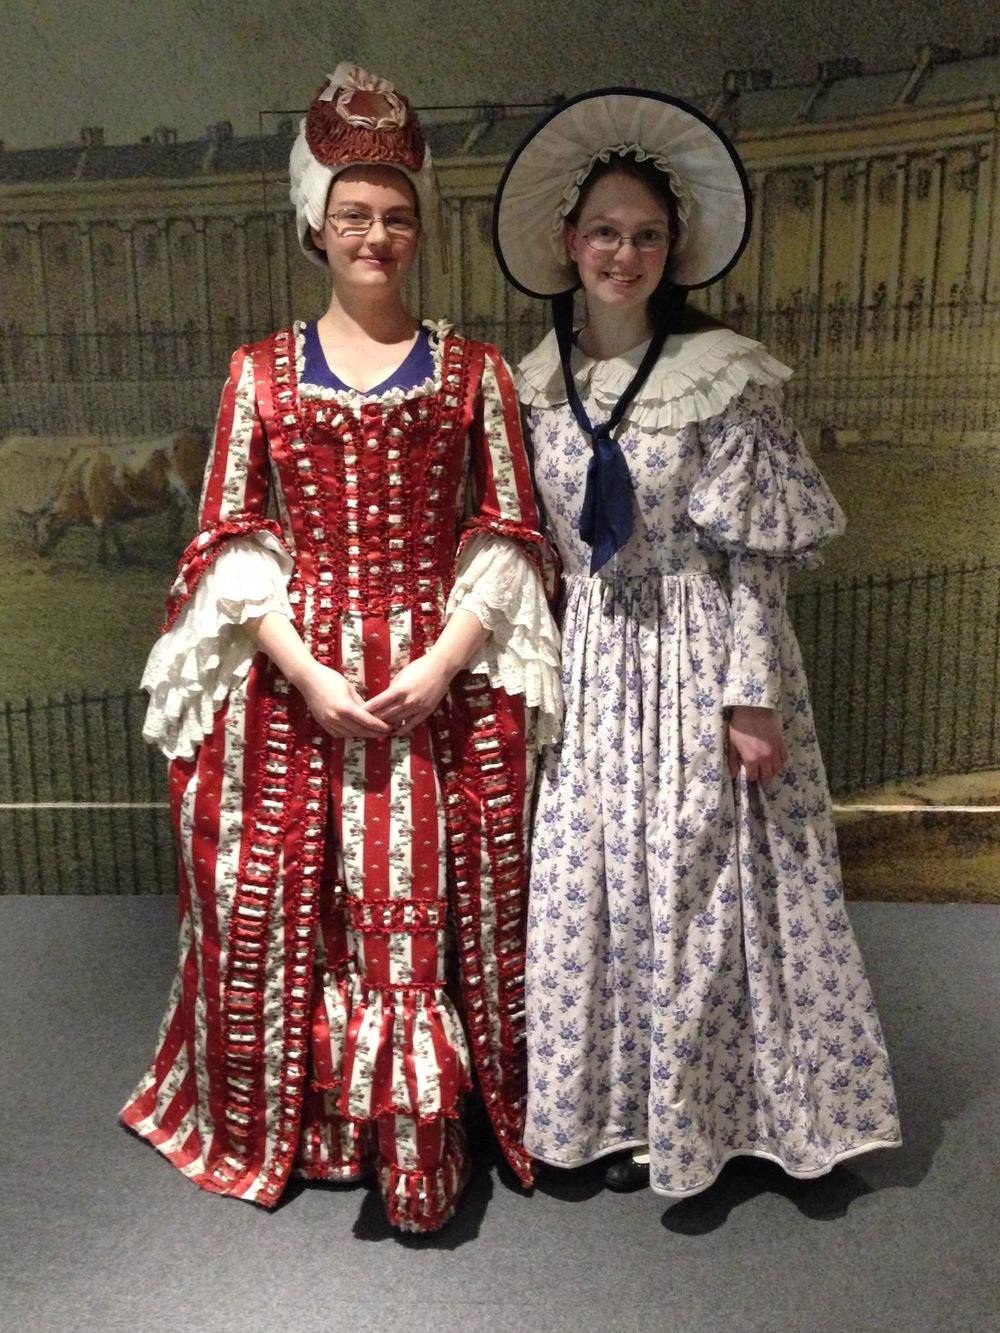 My sister in an 18th-century costume and wig, me in a 19th-century costume and hat.